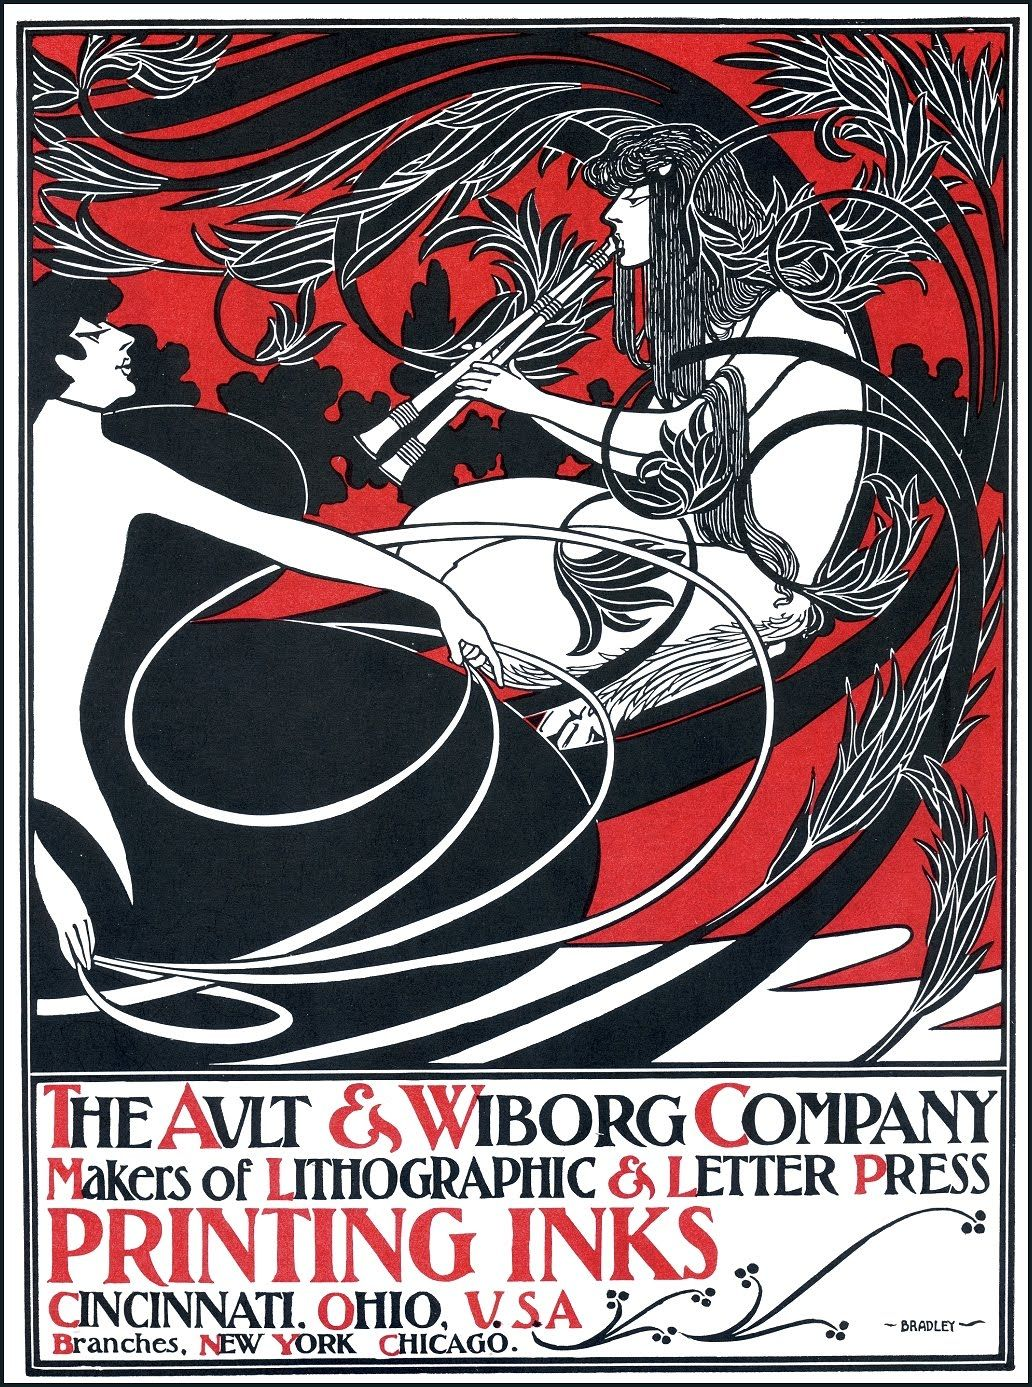 Original Antique Art Nouveau Printers Ink Advertising Prints For Sale The Ault Wiborg Company Poster WIlliam H Bradley 1900